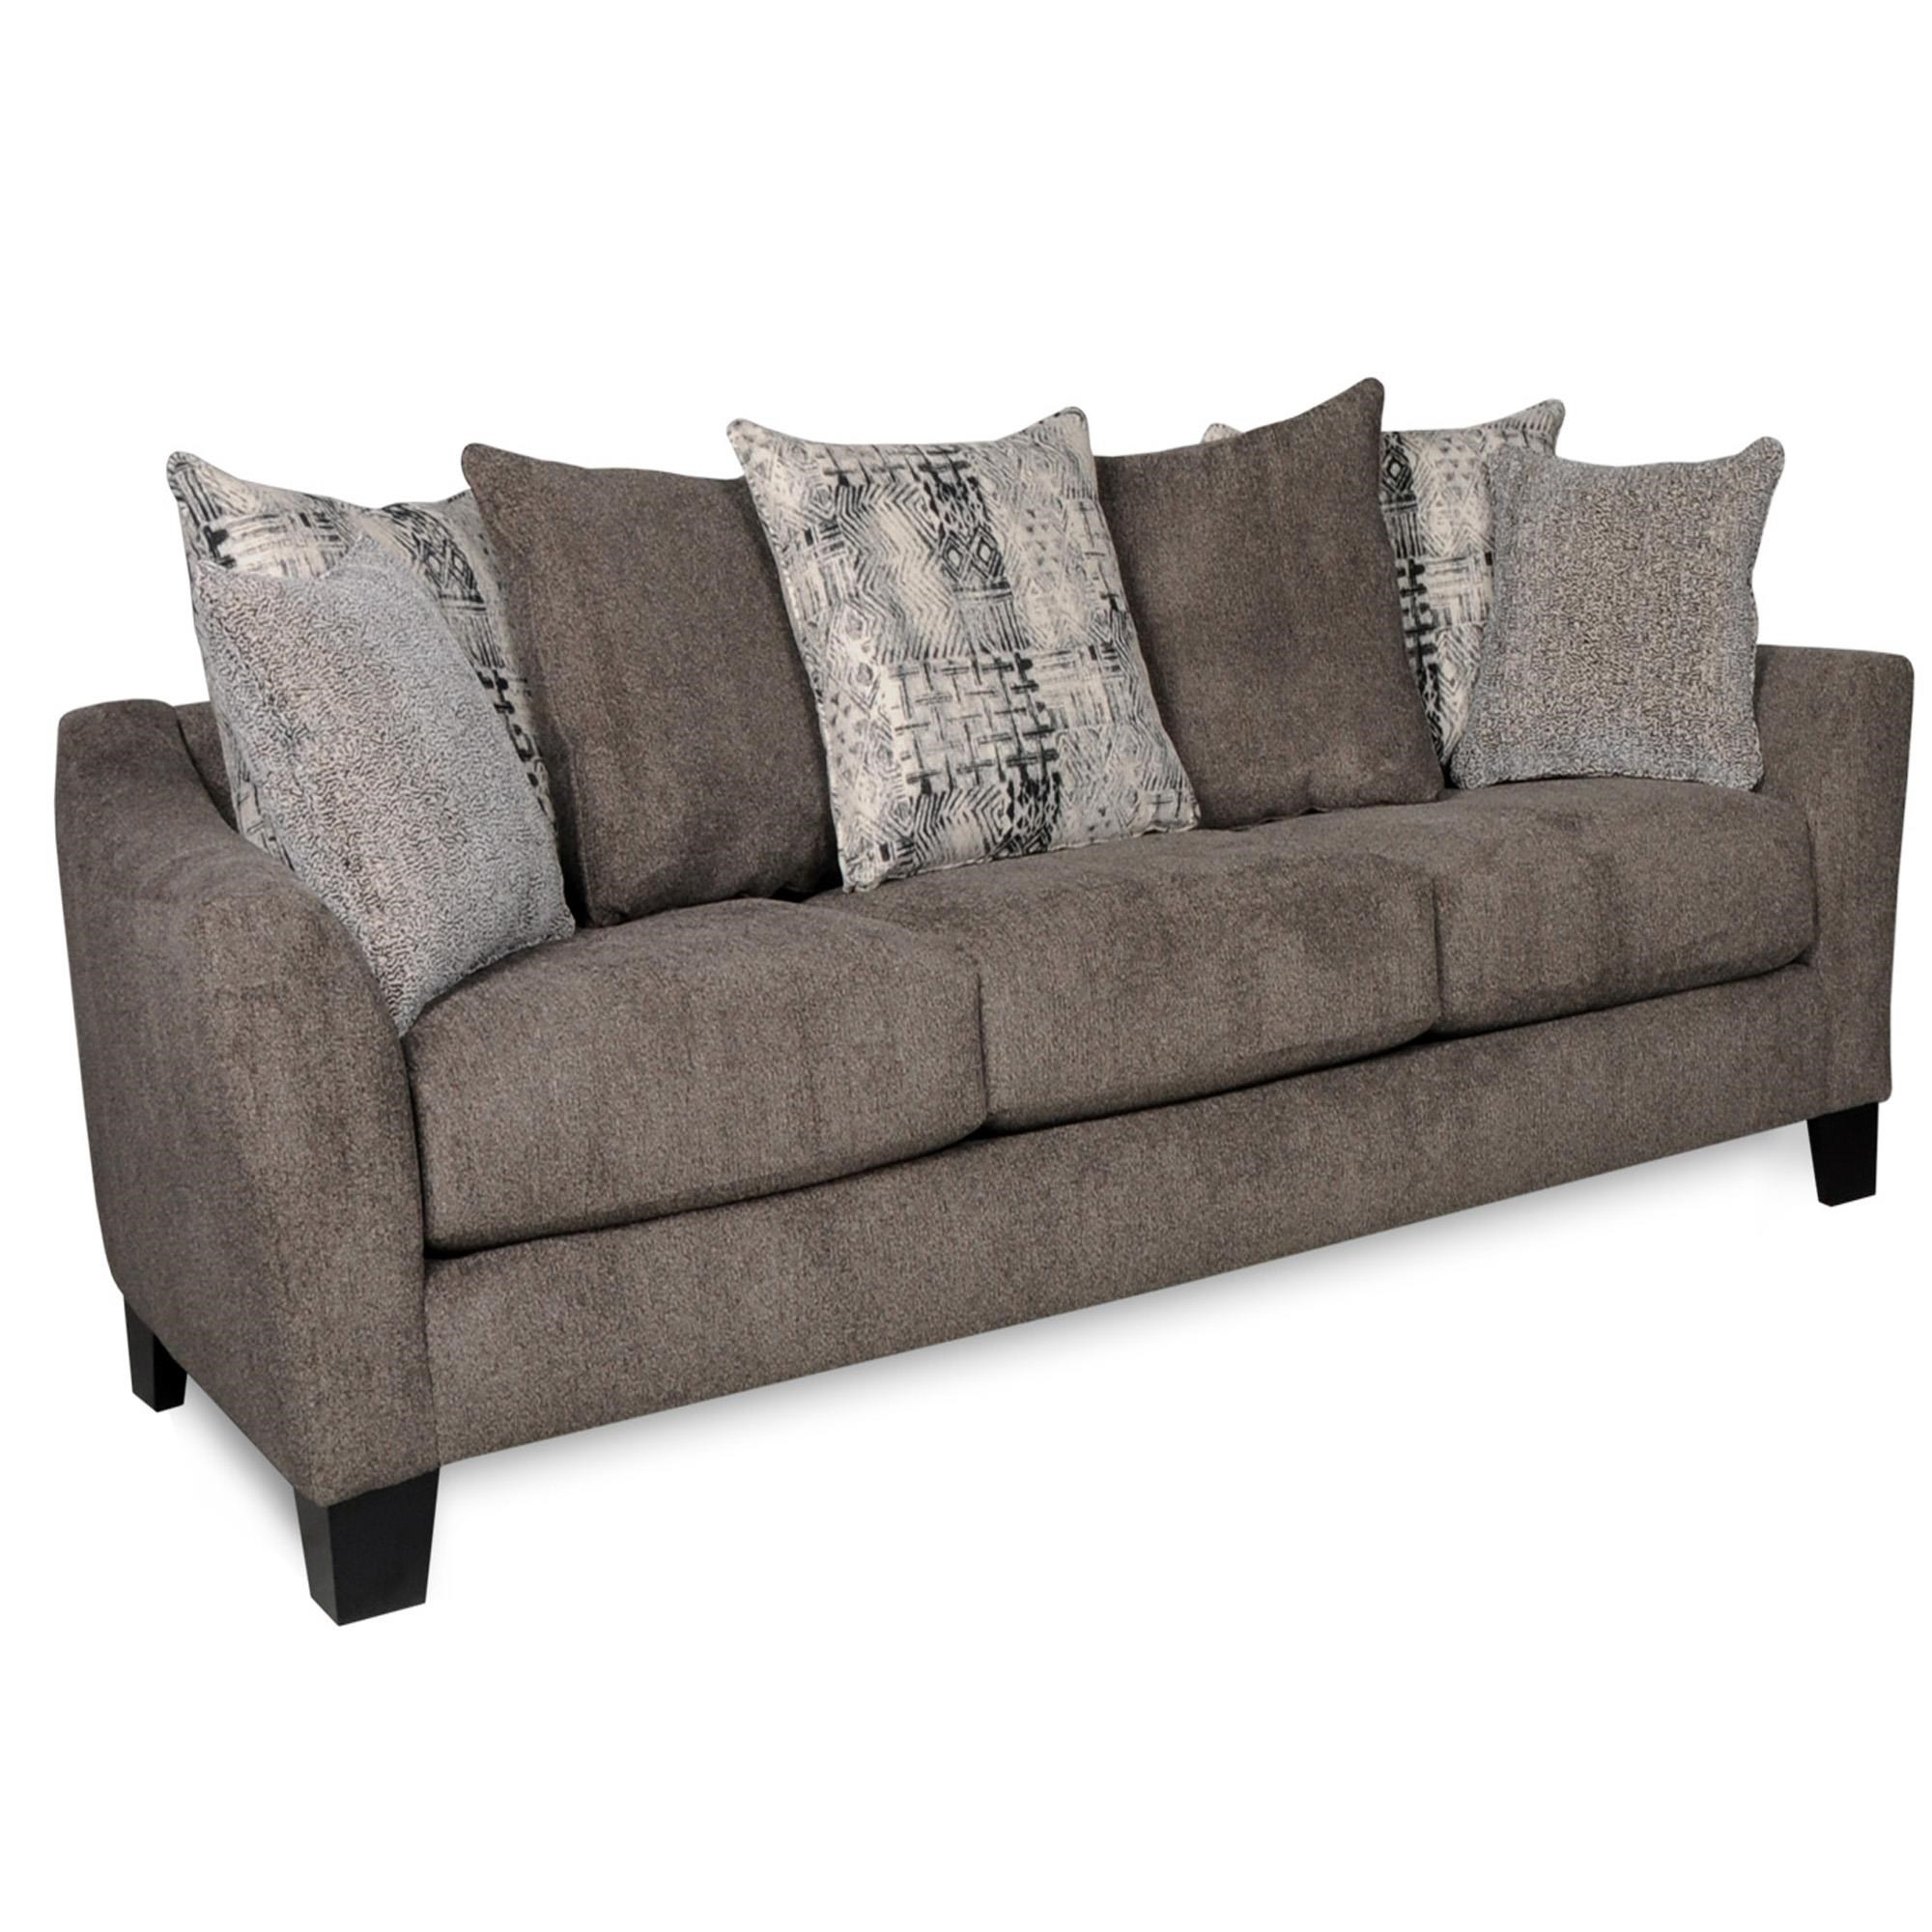 8642 transitional sectional sofa with chaise by albany surefit pearson stretch cover fusion platinum great american